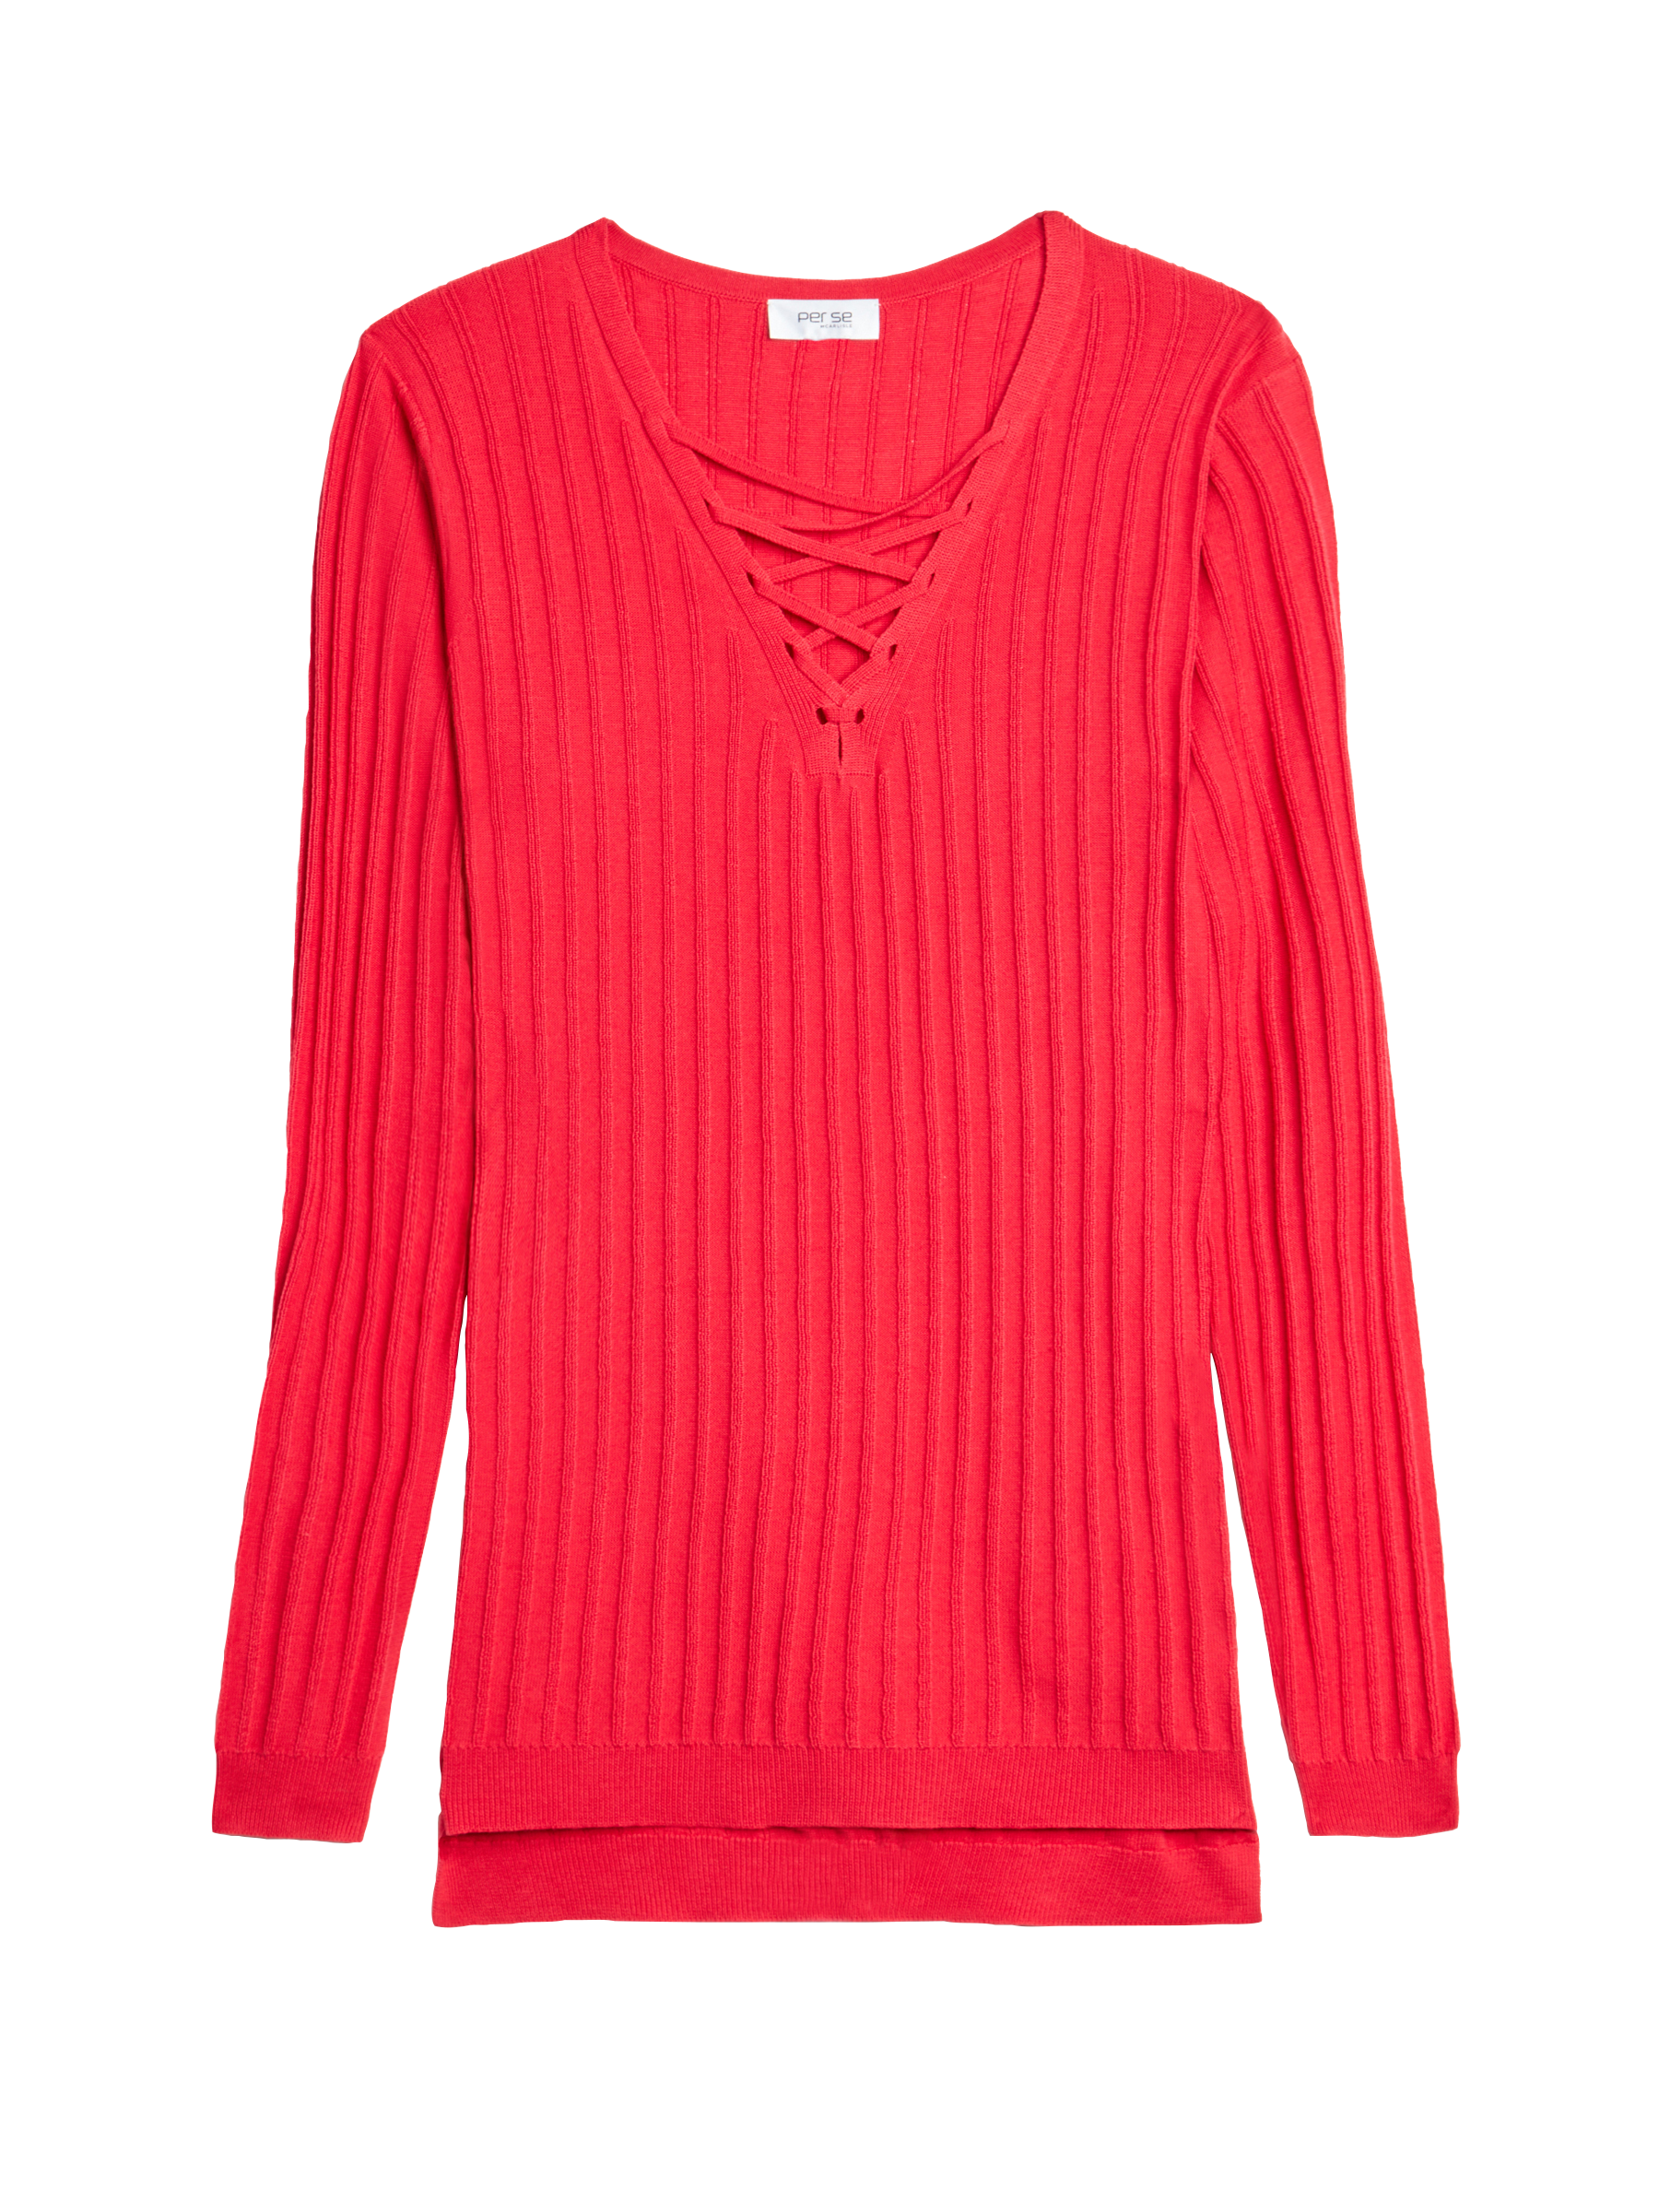 A simple ribbed sweater gets an on-trend update with lacing at the front neck. From Carlisle.